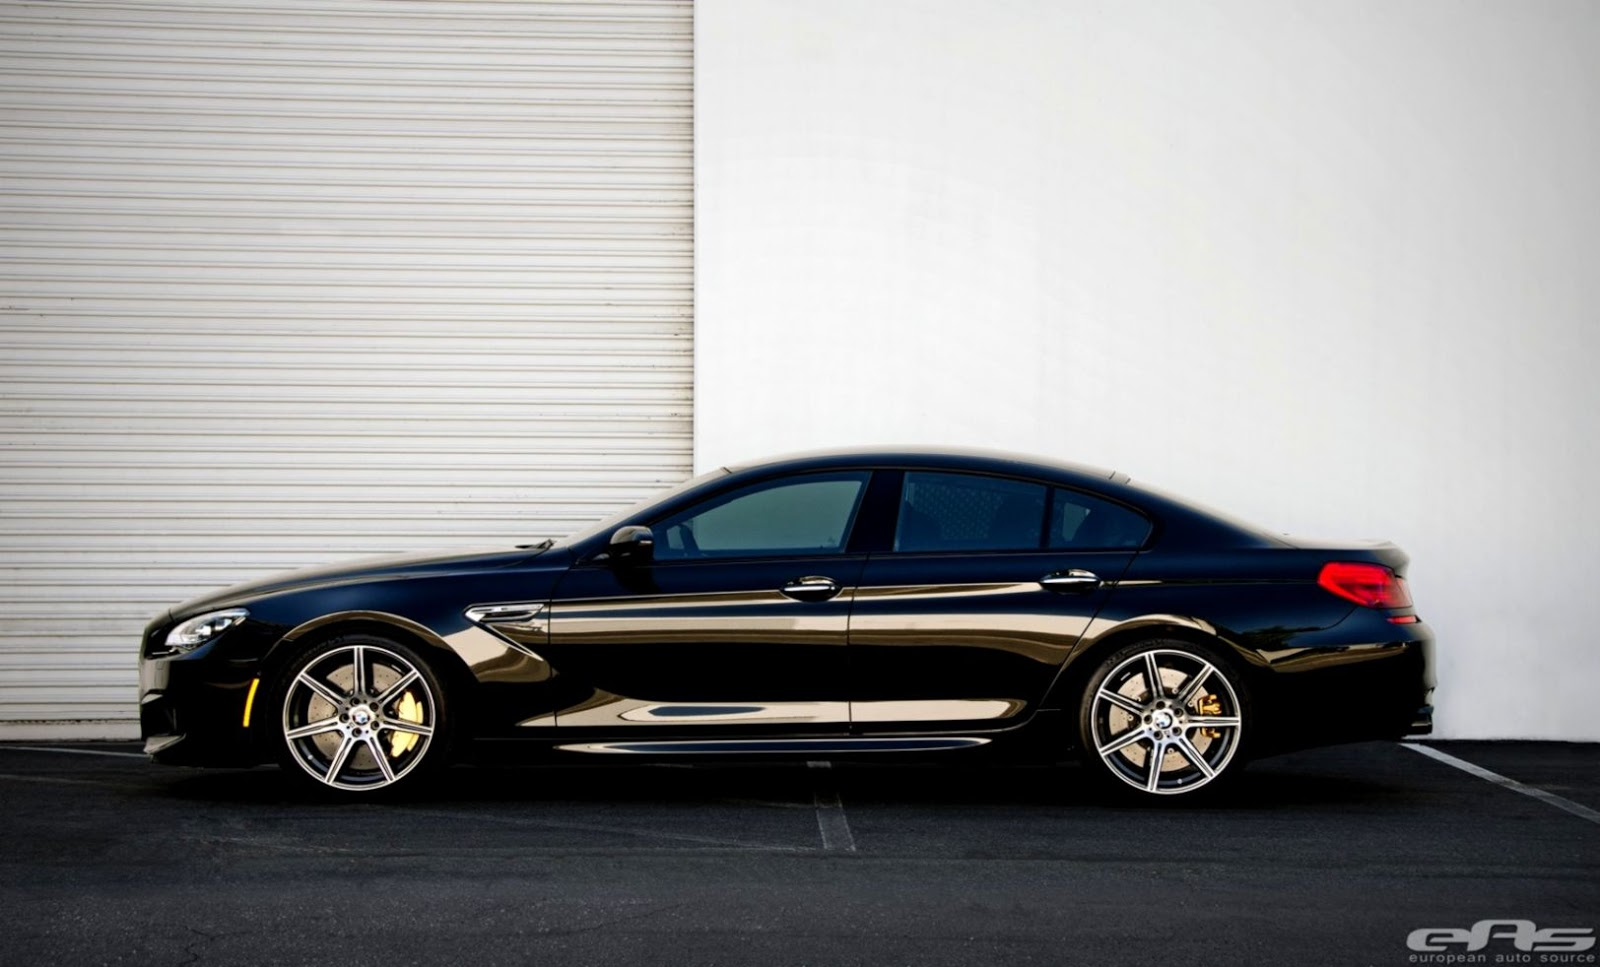 Competition Package Bmw M6 Gran Coupe Goes Completely Bmw M6 F06 Black 1600x967 Wallpaper Teahub Io